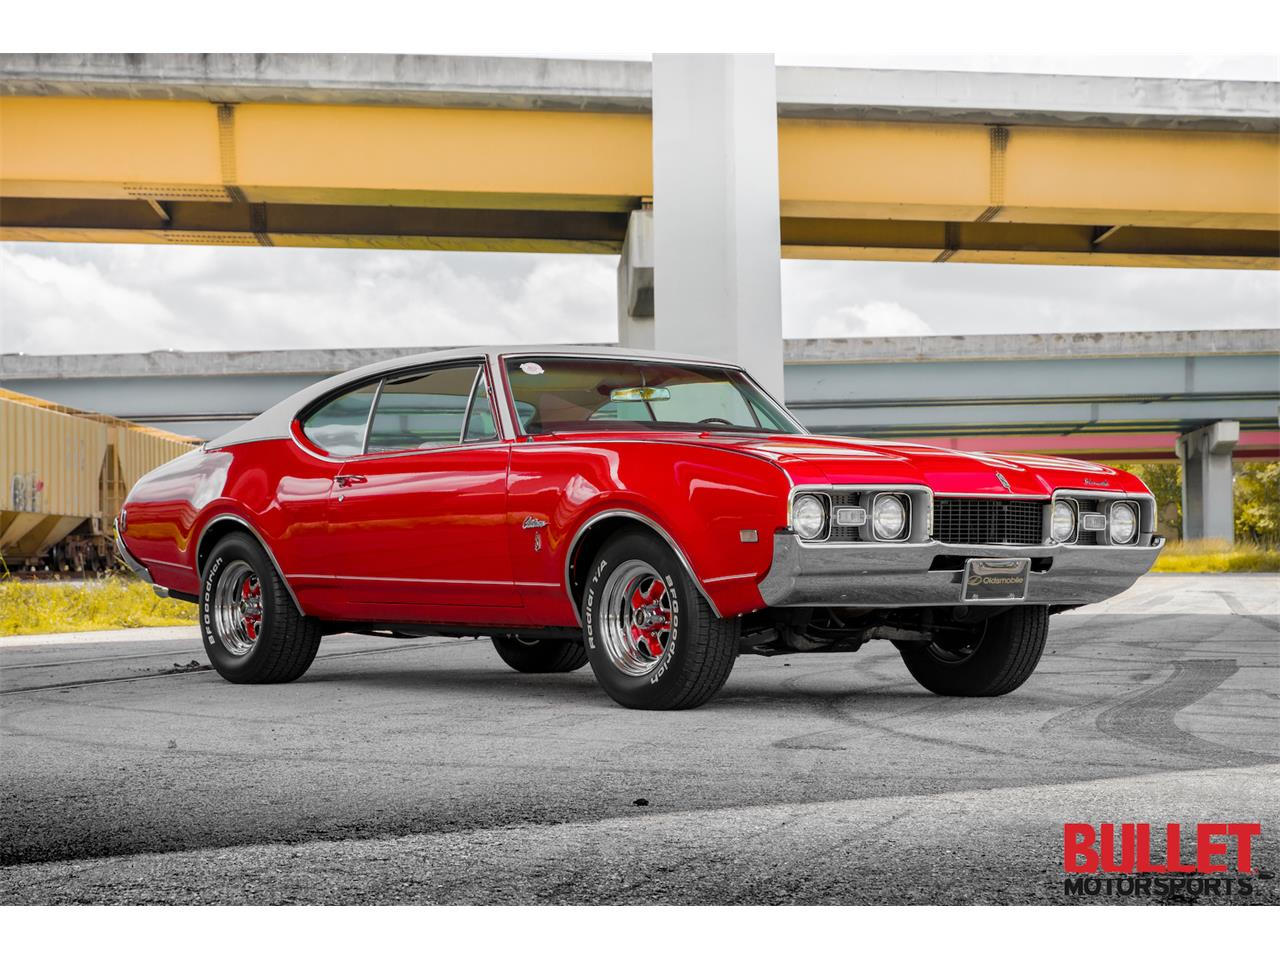 Large Picture of Classic 1968 Cutlass Supreme located in Florida - $30,000.00 Offered by Bullet Motorsports Inc - PZS9